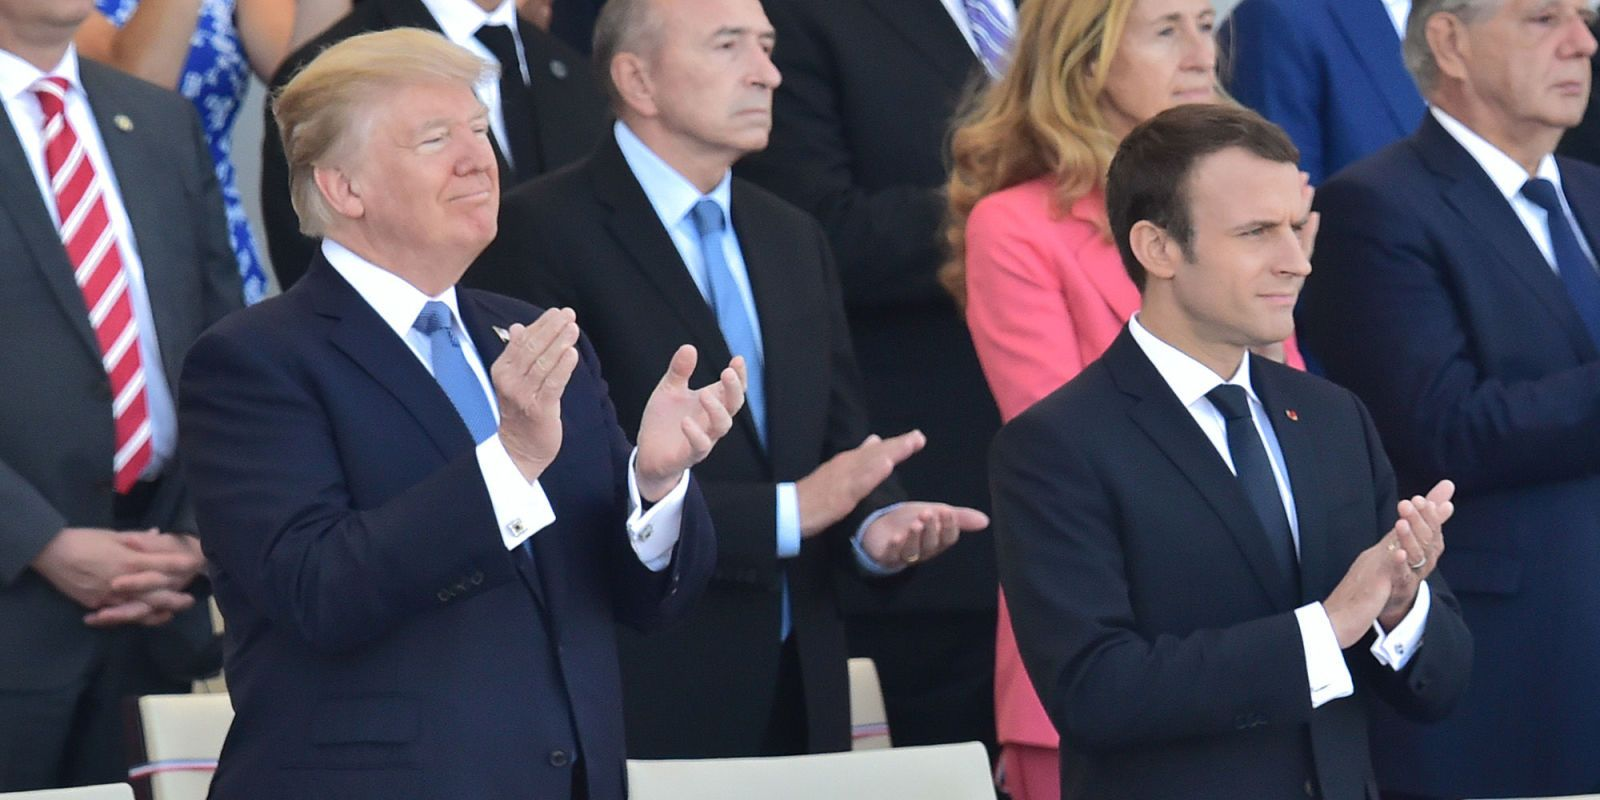 French army performs incredible Daft Punk medley and Trump has no idea what is happening